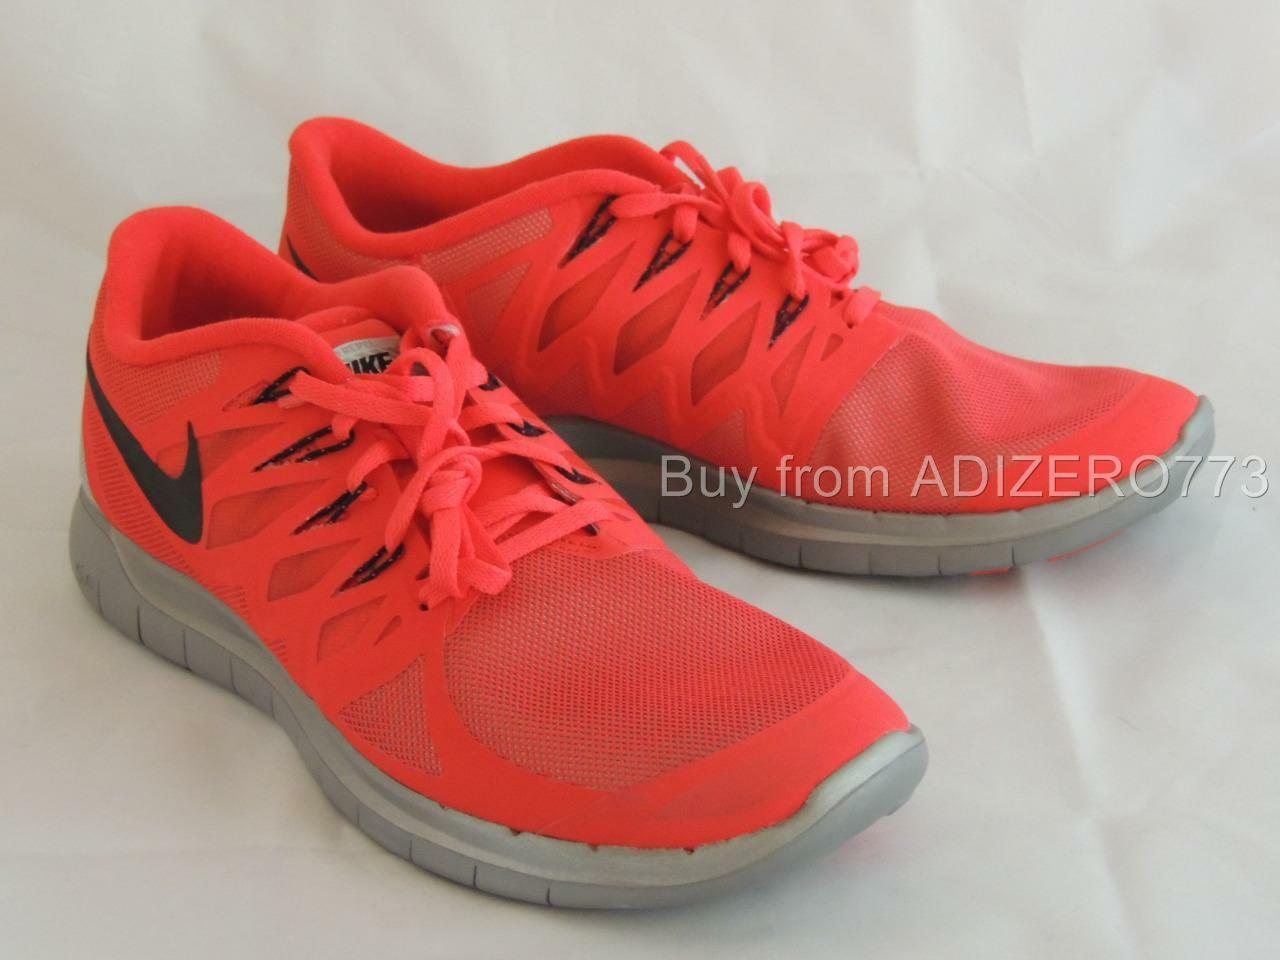 Nike Free 5.0 FLASH H2O Repel 685168 600 Action Red Reflect Silver Wolf Grey